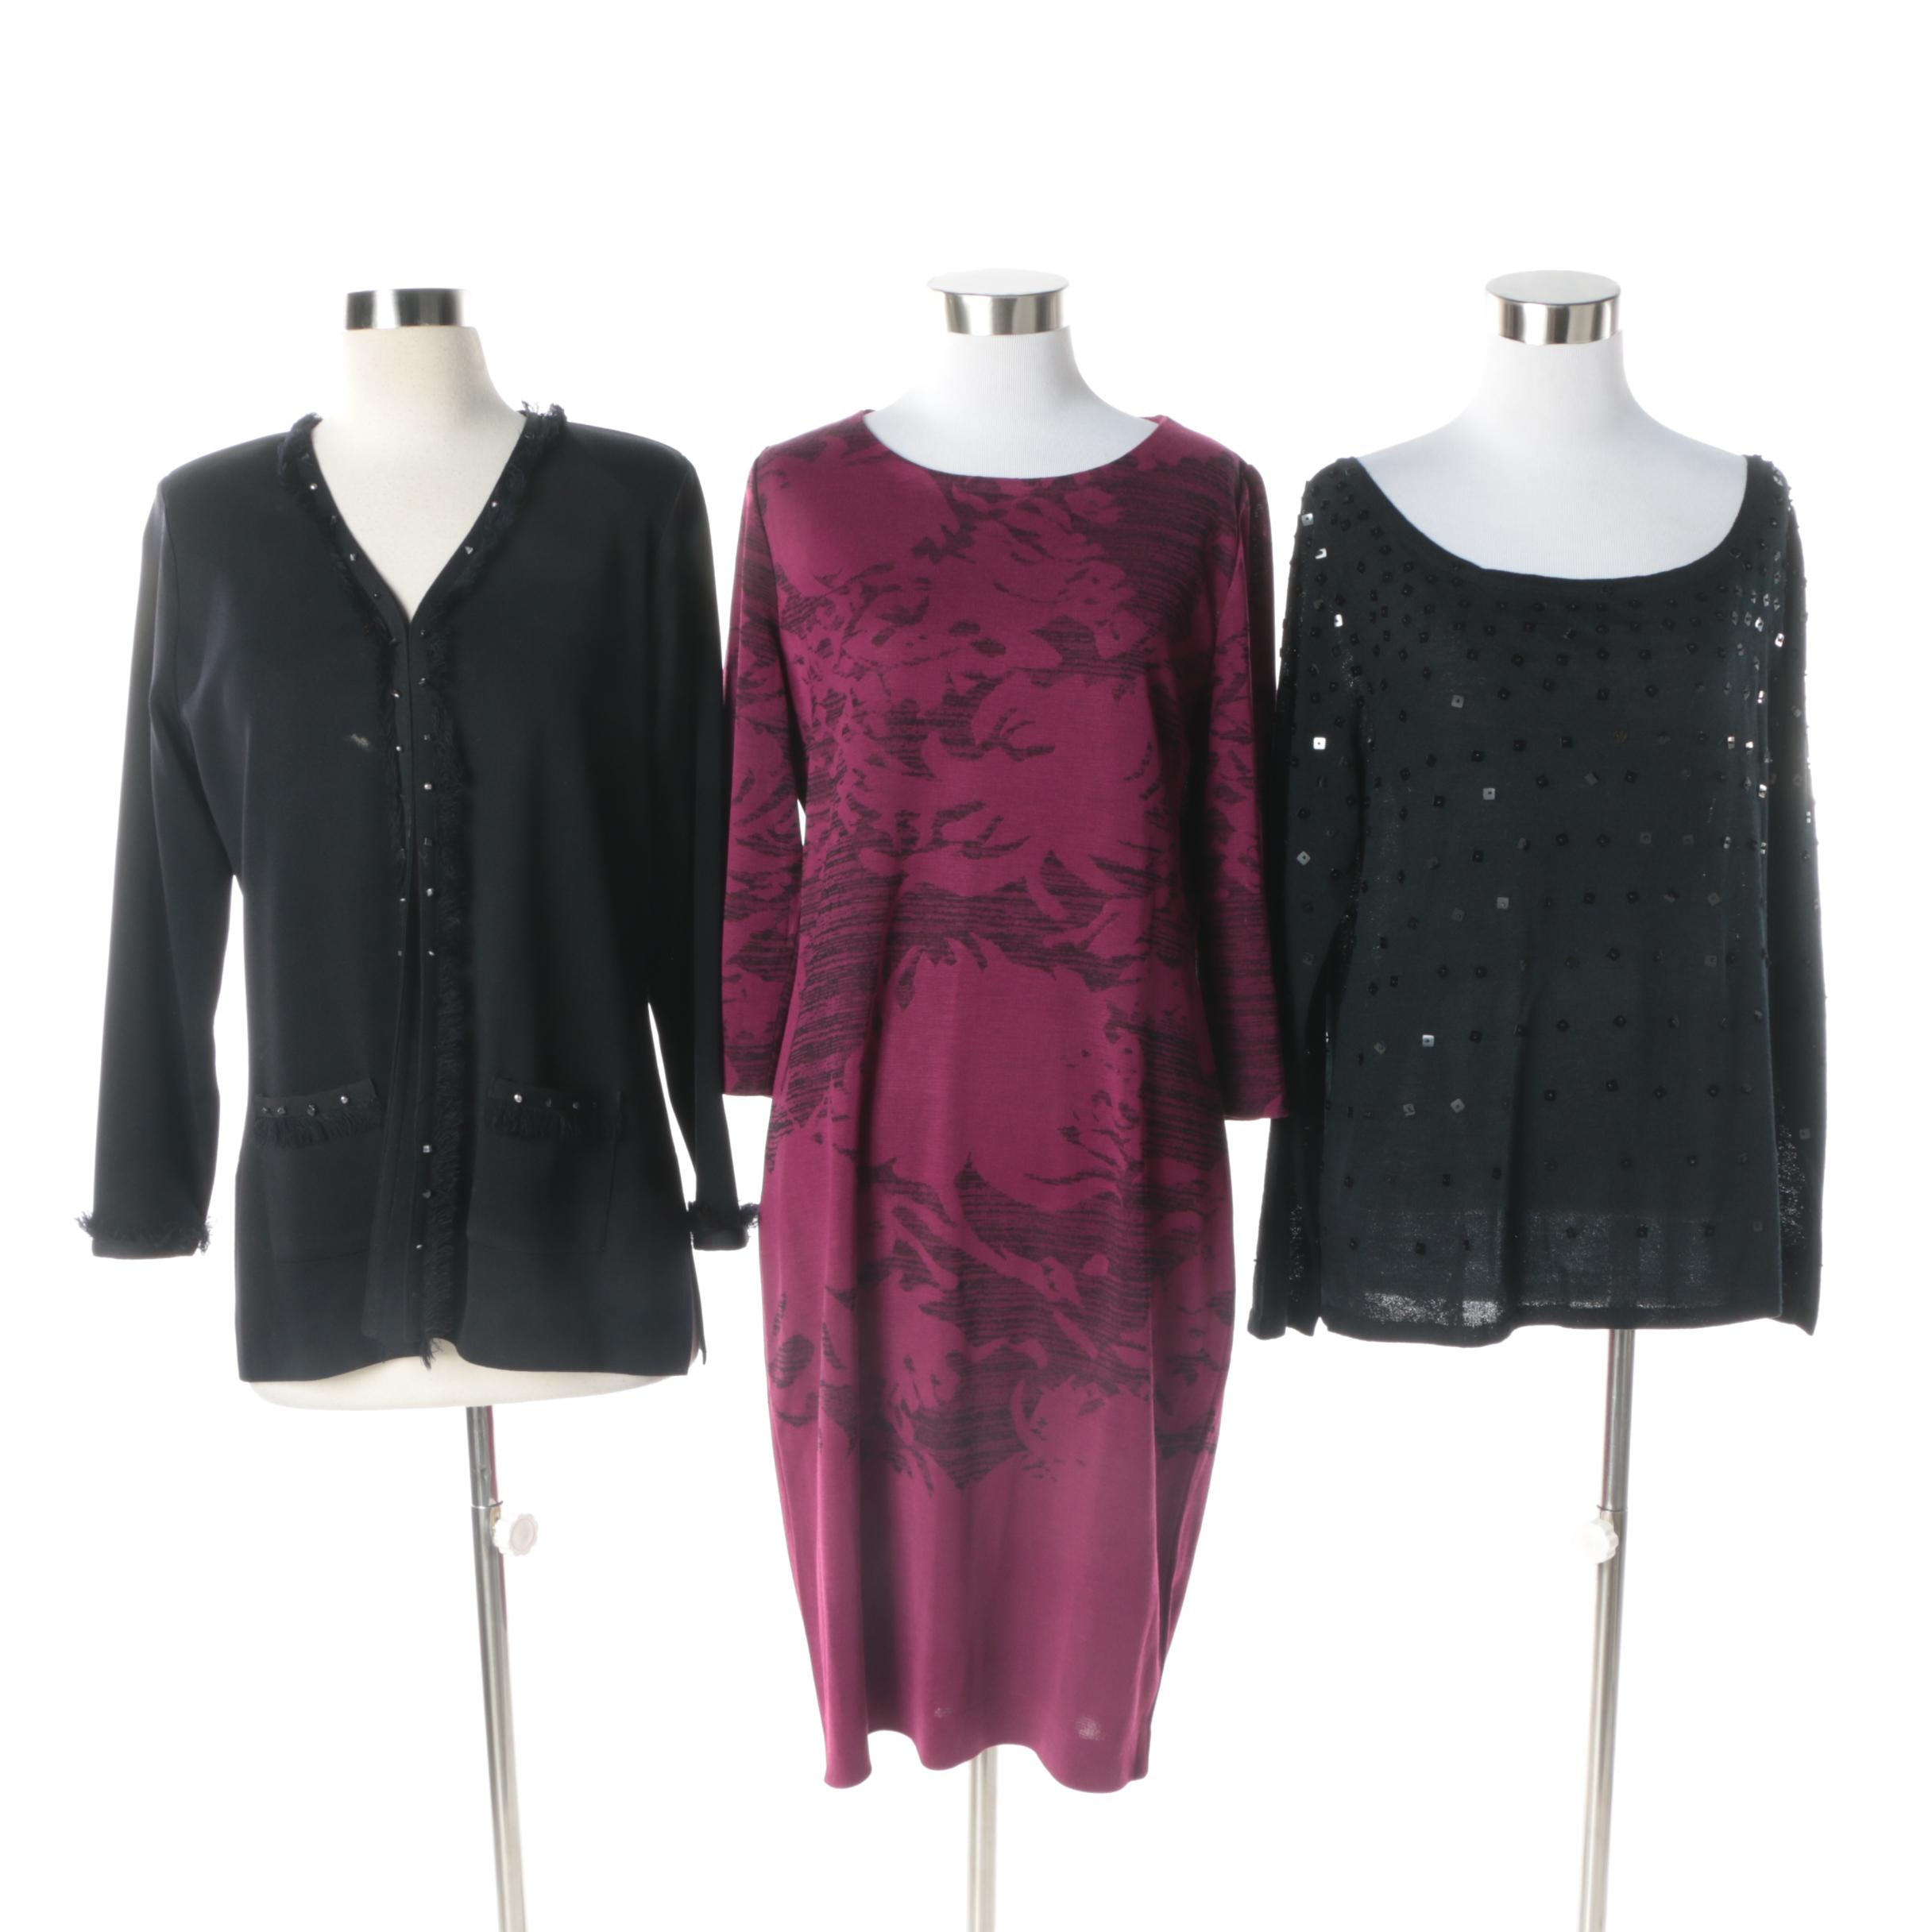 Women's Clothing Separates Including Misook and Colette Mordo